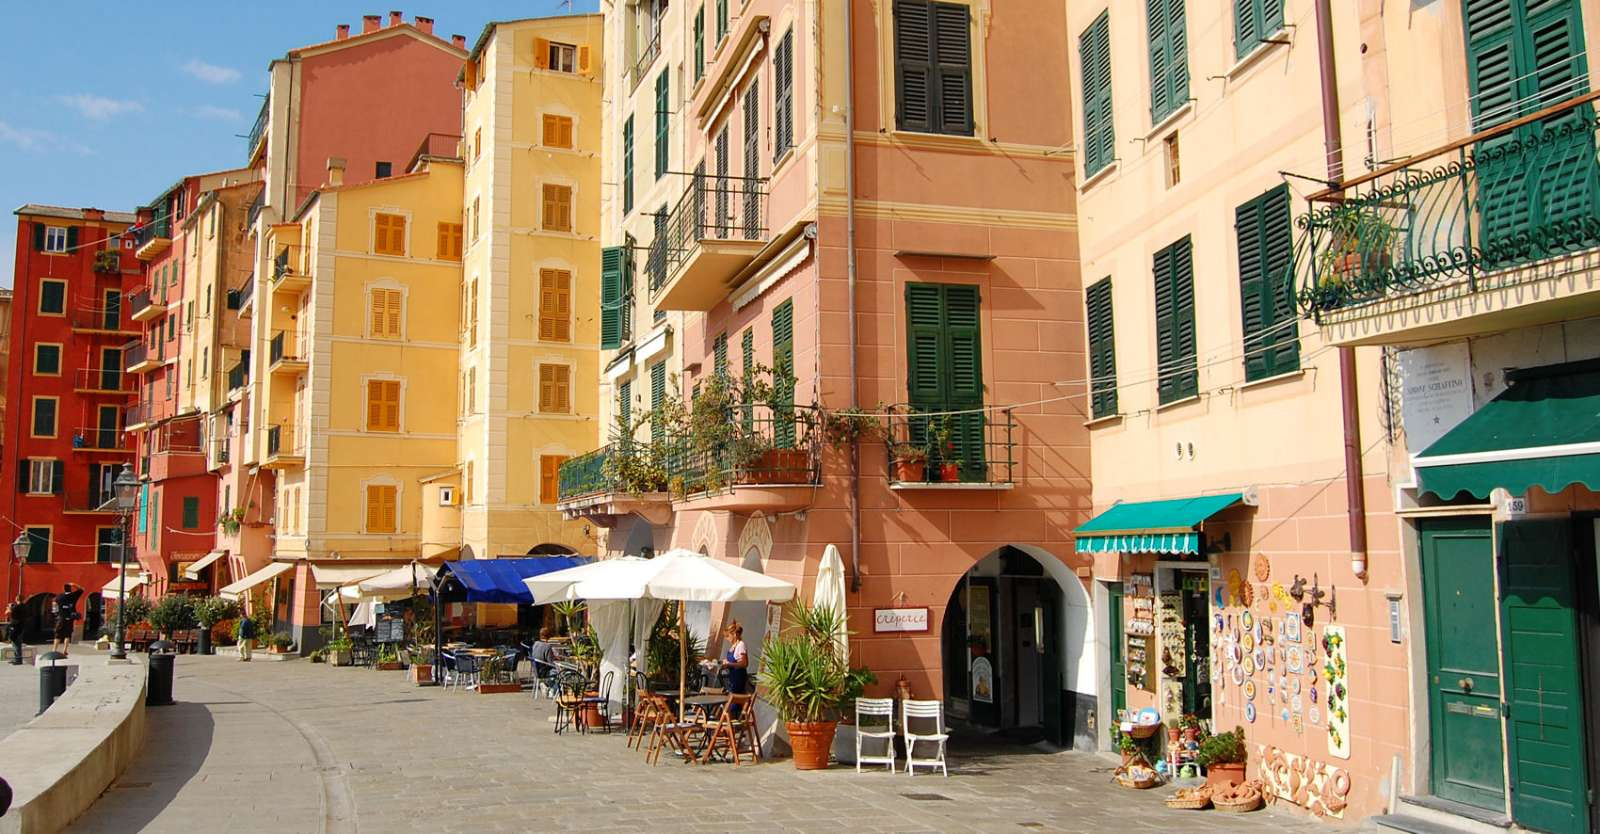 The many pastel colours of Liguria  - in Camogli at Portofino